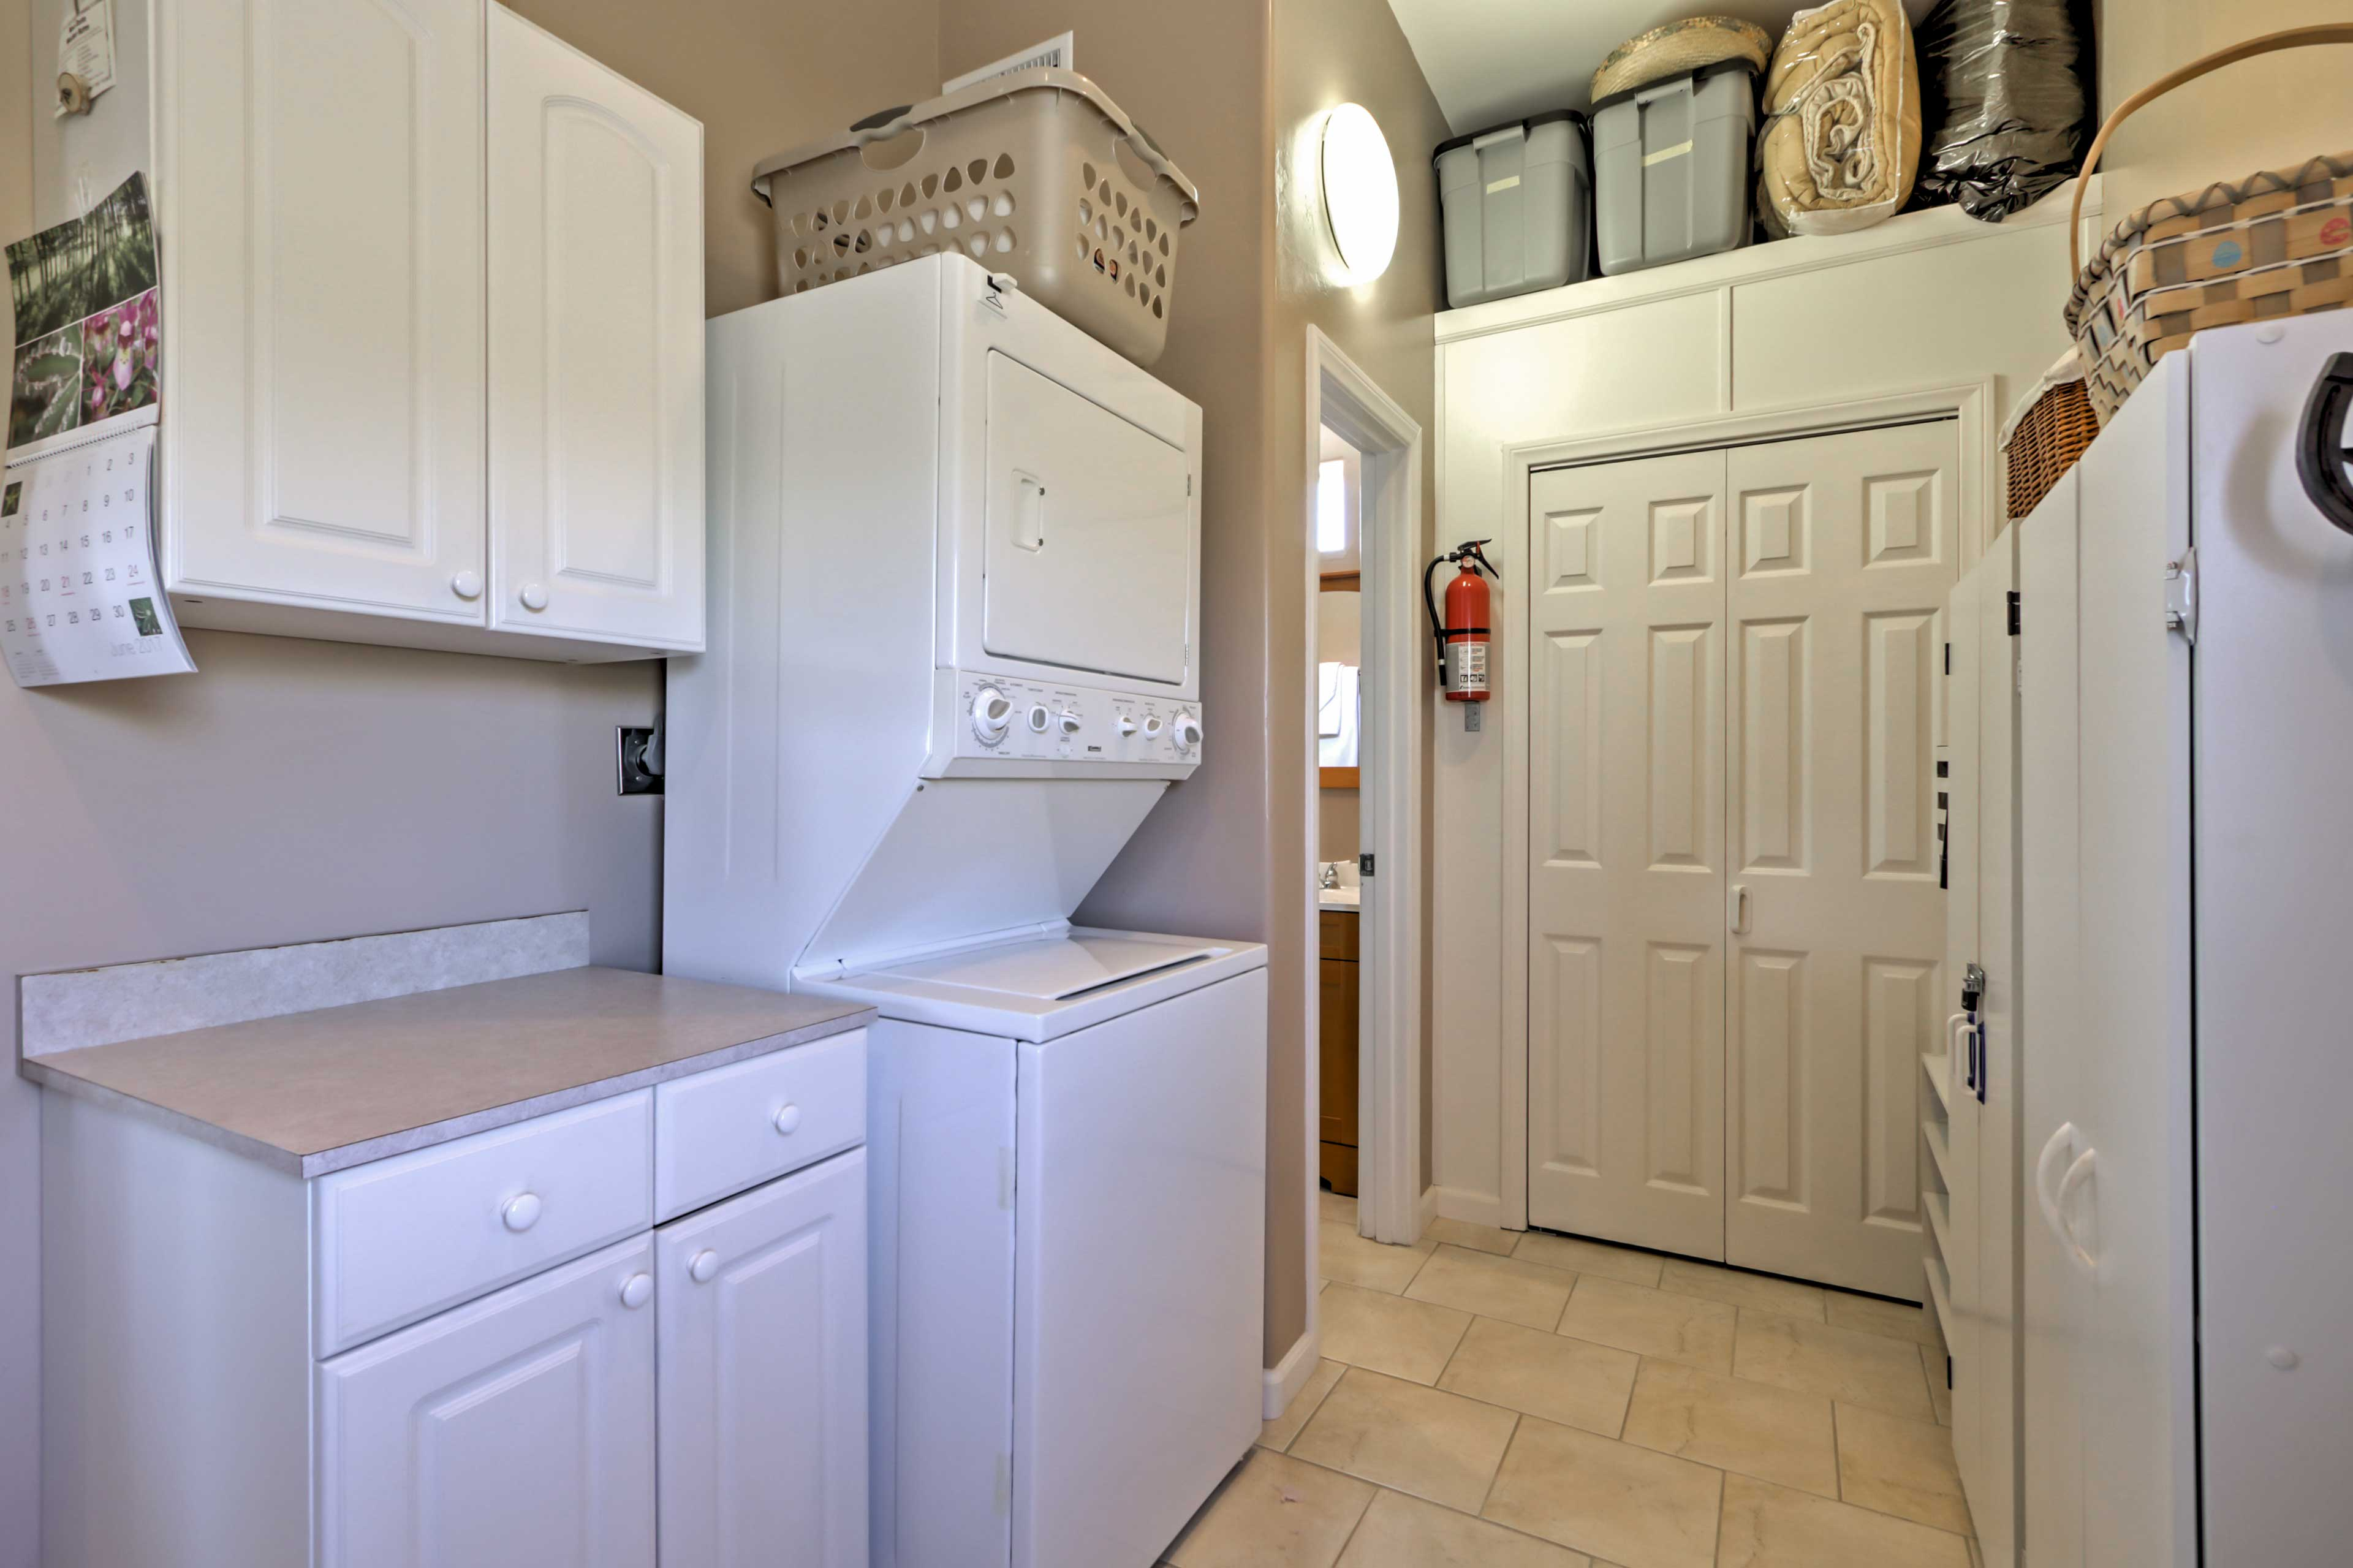 Keep your clothes clean during your stay by utilizing the laundry machines.